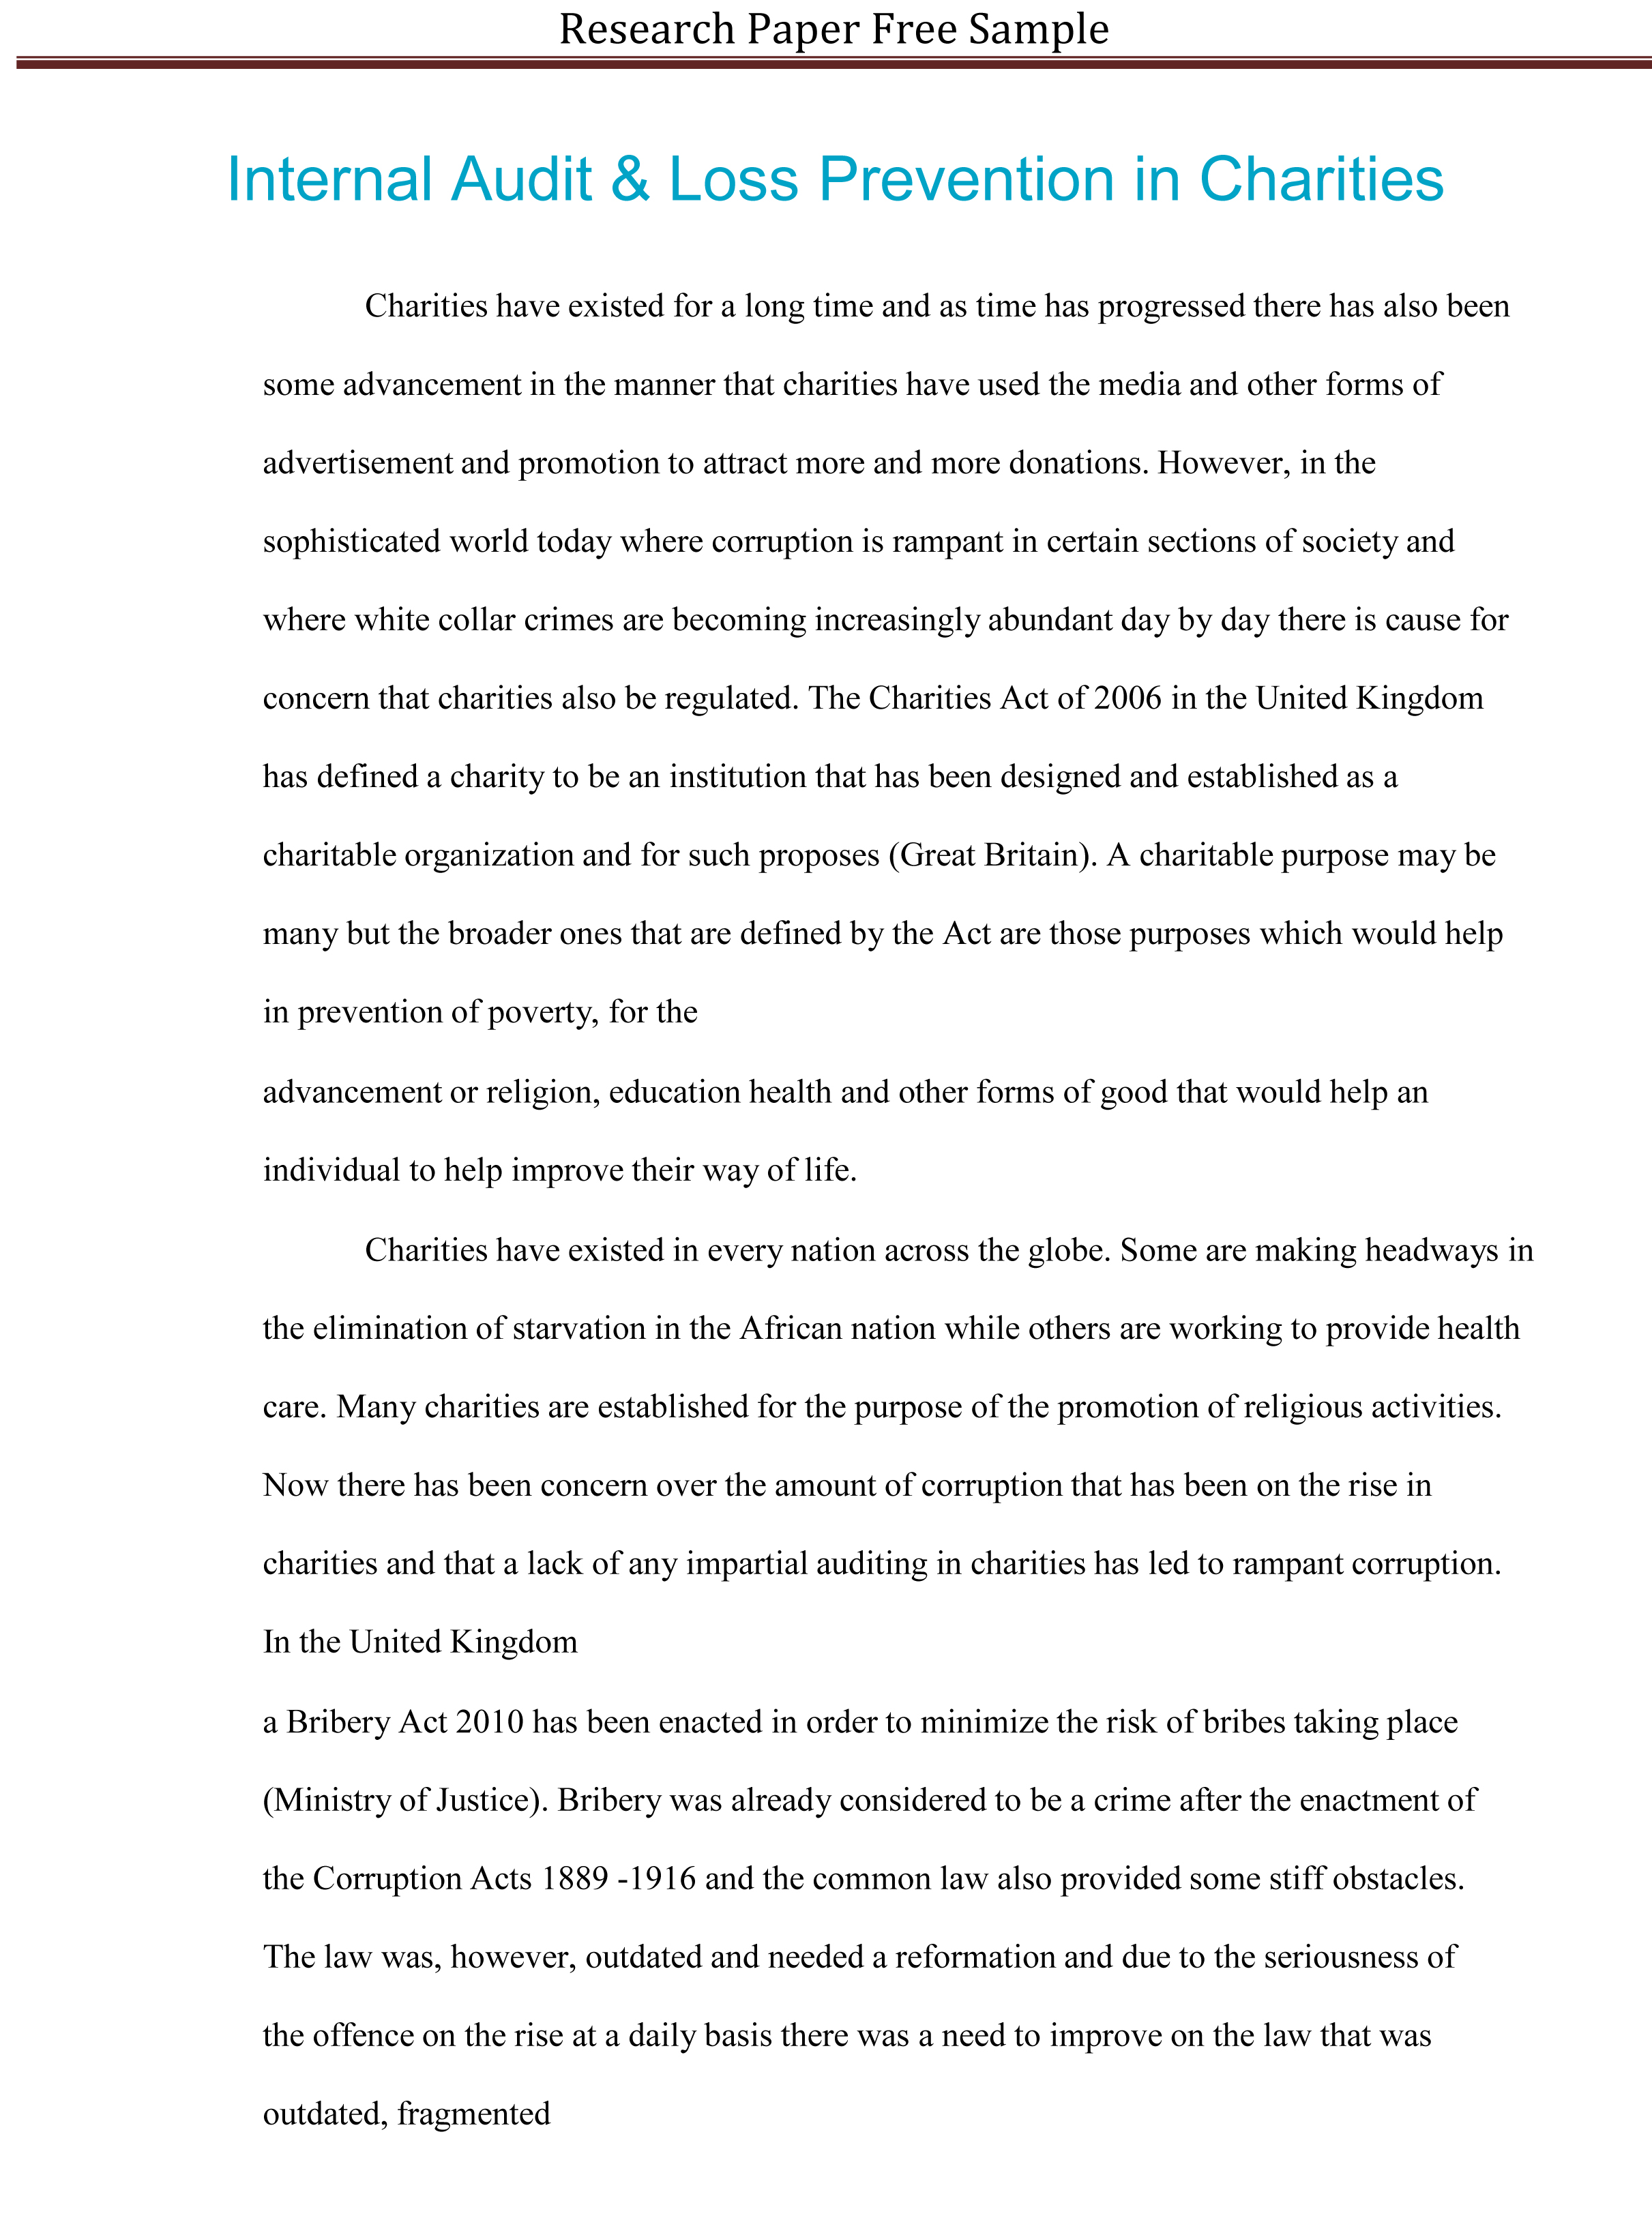 002 Research Paper Free Examples Of College Papers Unusual Full